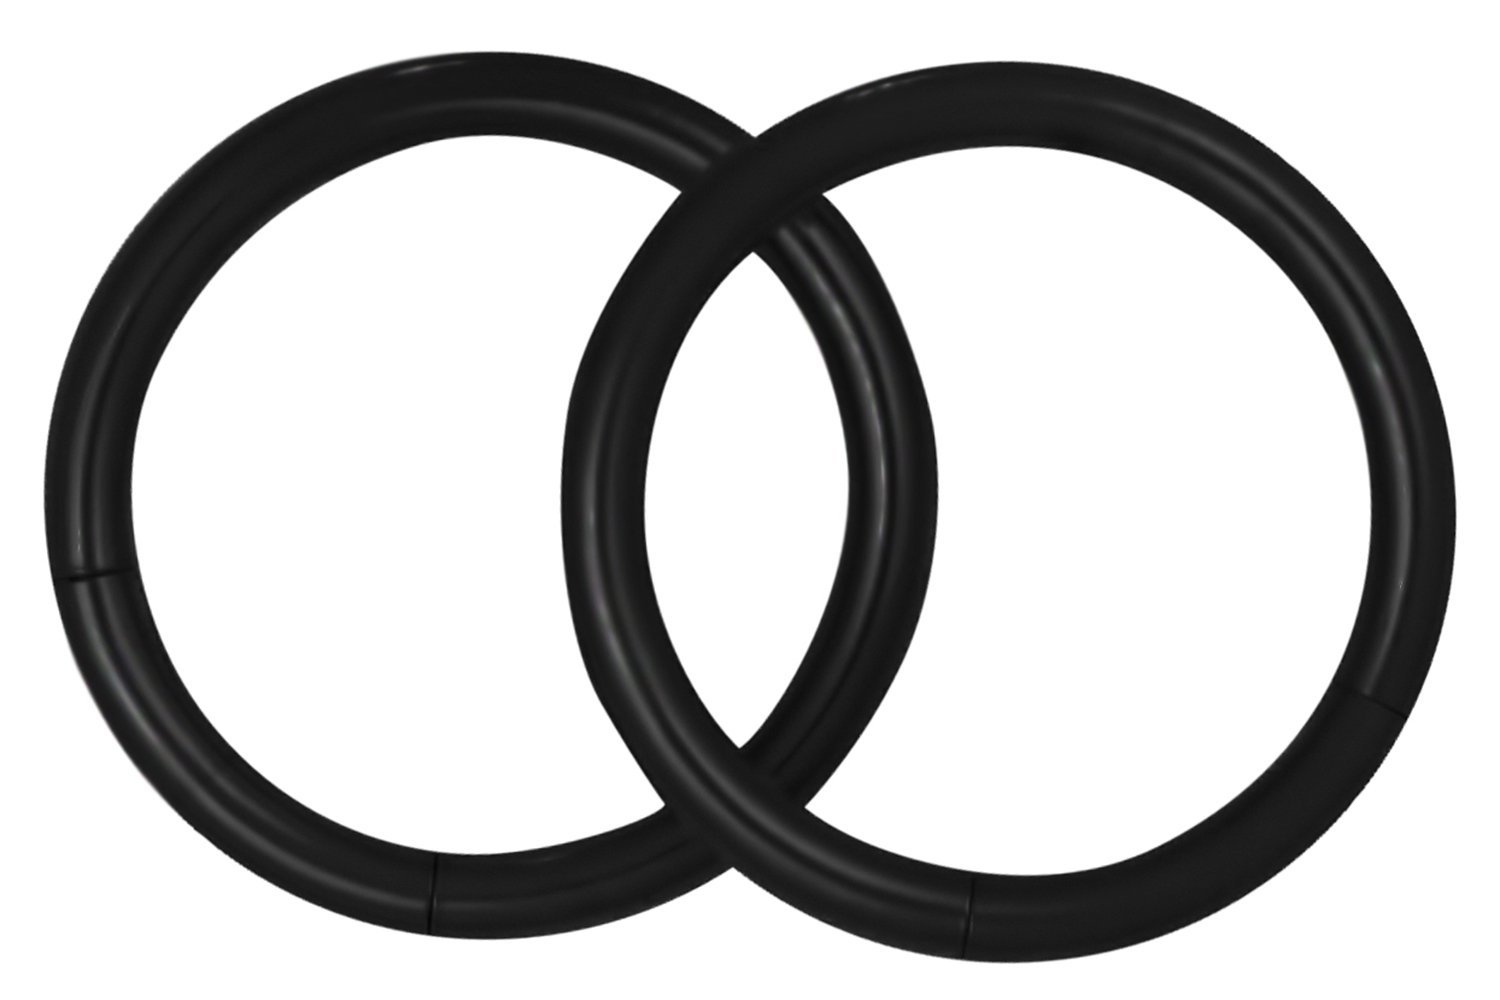 Forbidden Body Jewelry Pair of 2 Rings: 14g 1/2 Inch Surgical Steel Black IP Plated Seamless Segment Hoop Rings